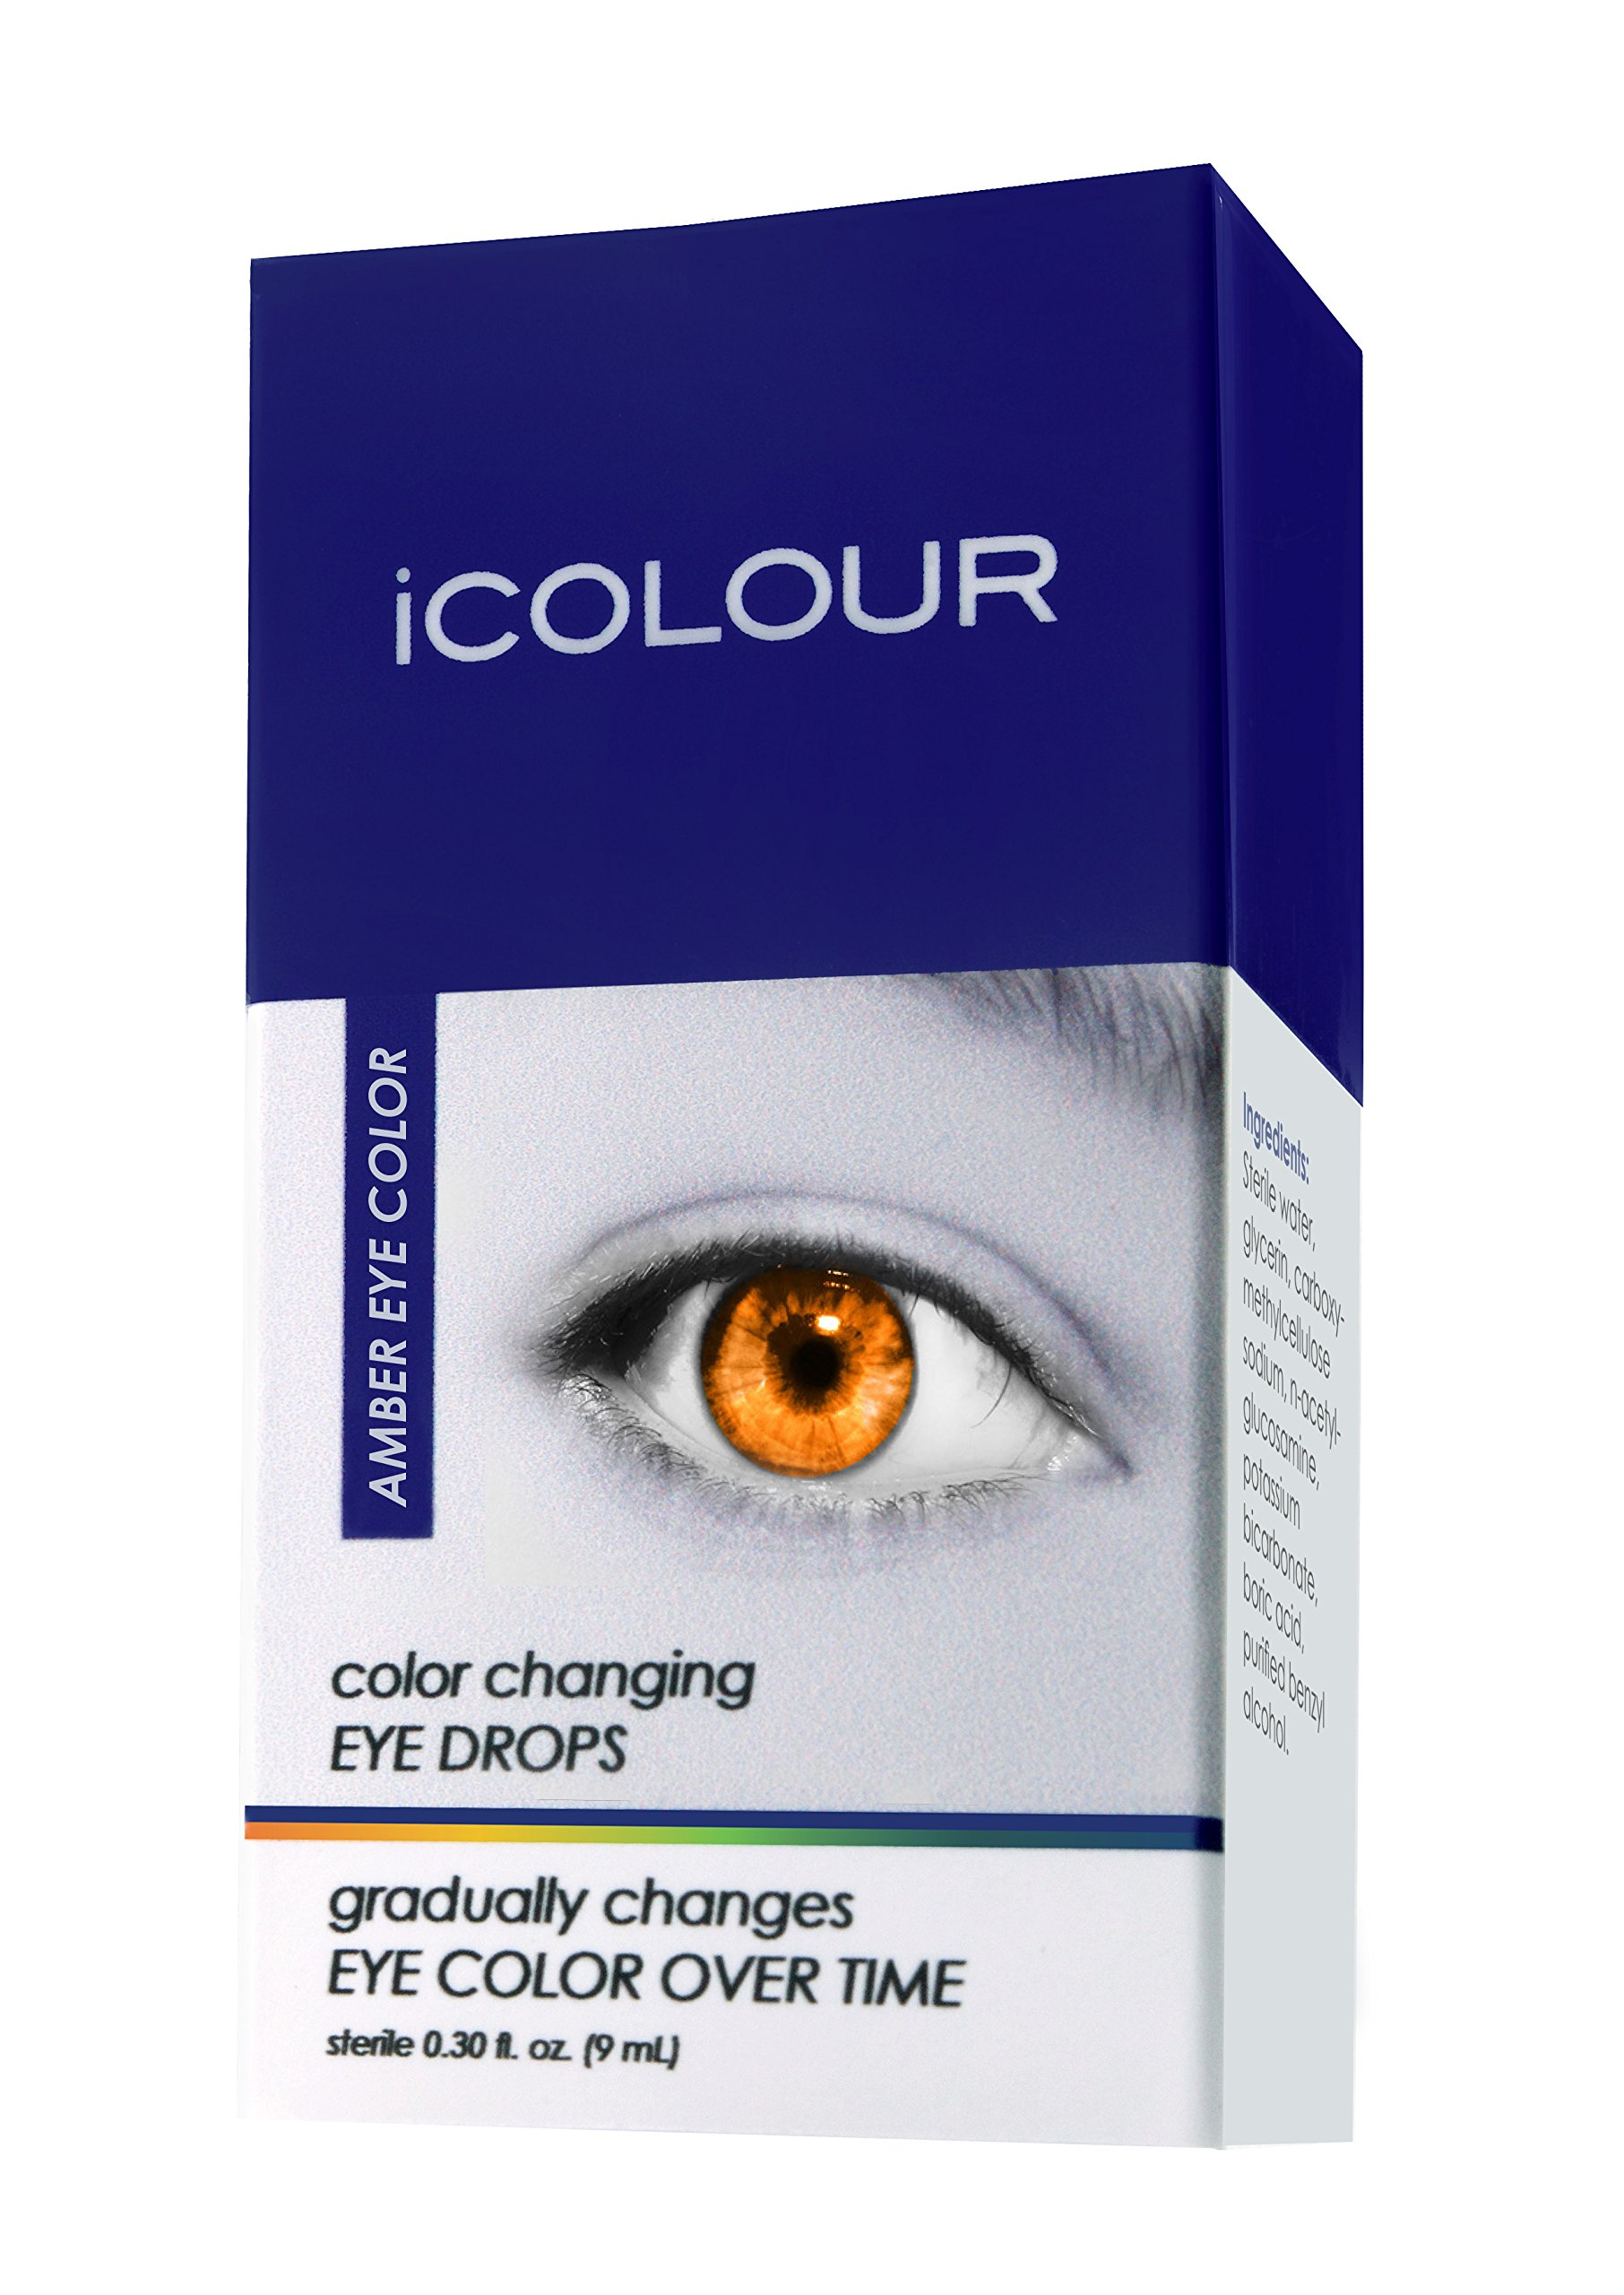 iCOLOUR Color Changing Eye Drops - Change Your Eye